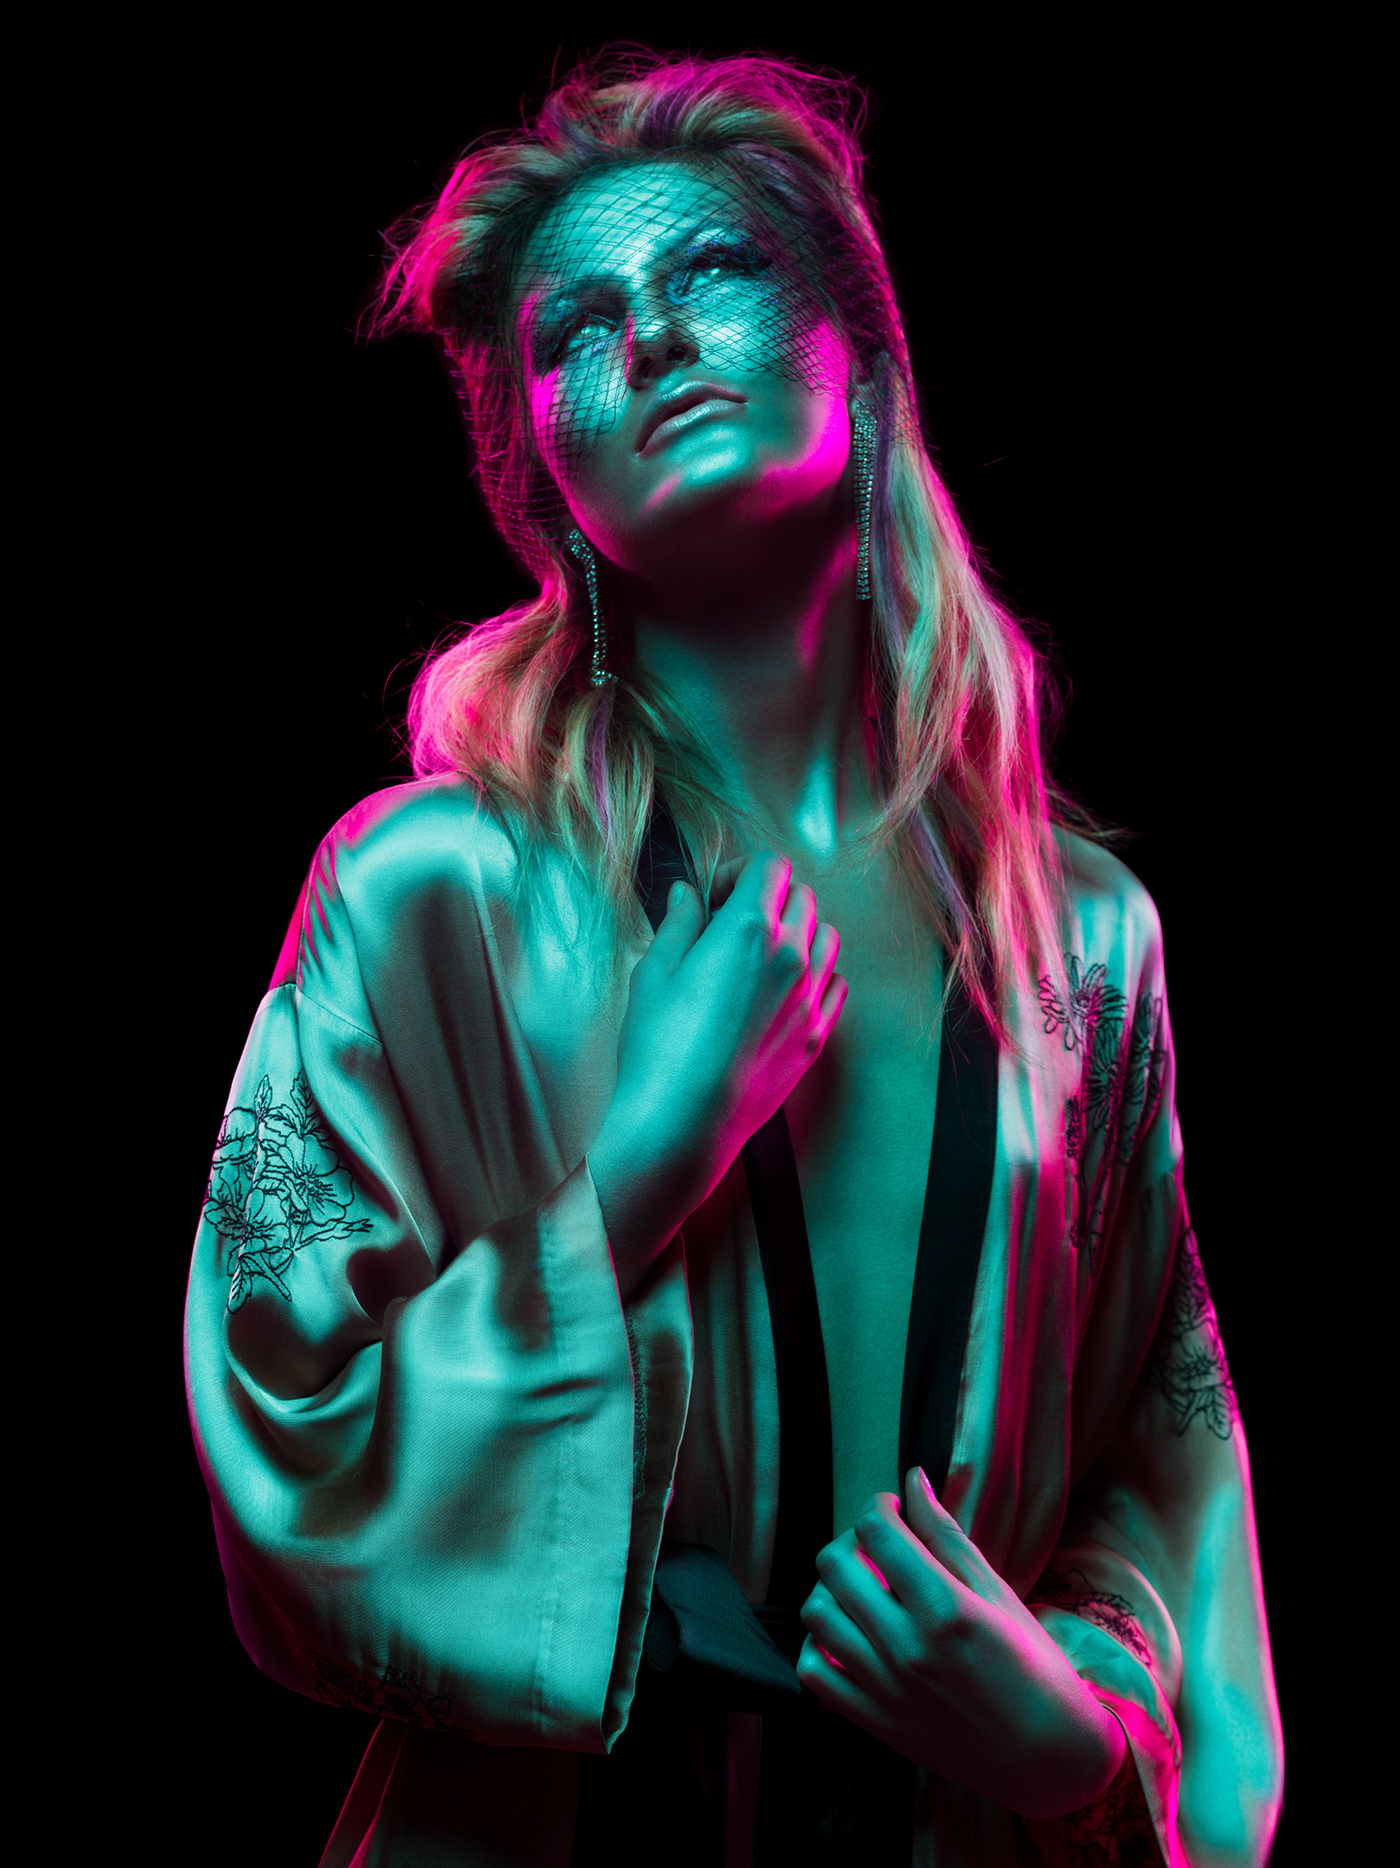 Editorial for Ellements Magazine / фото Andre Schneider